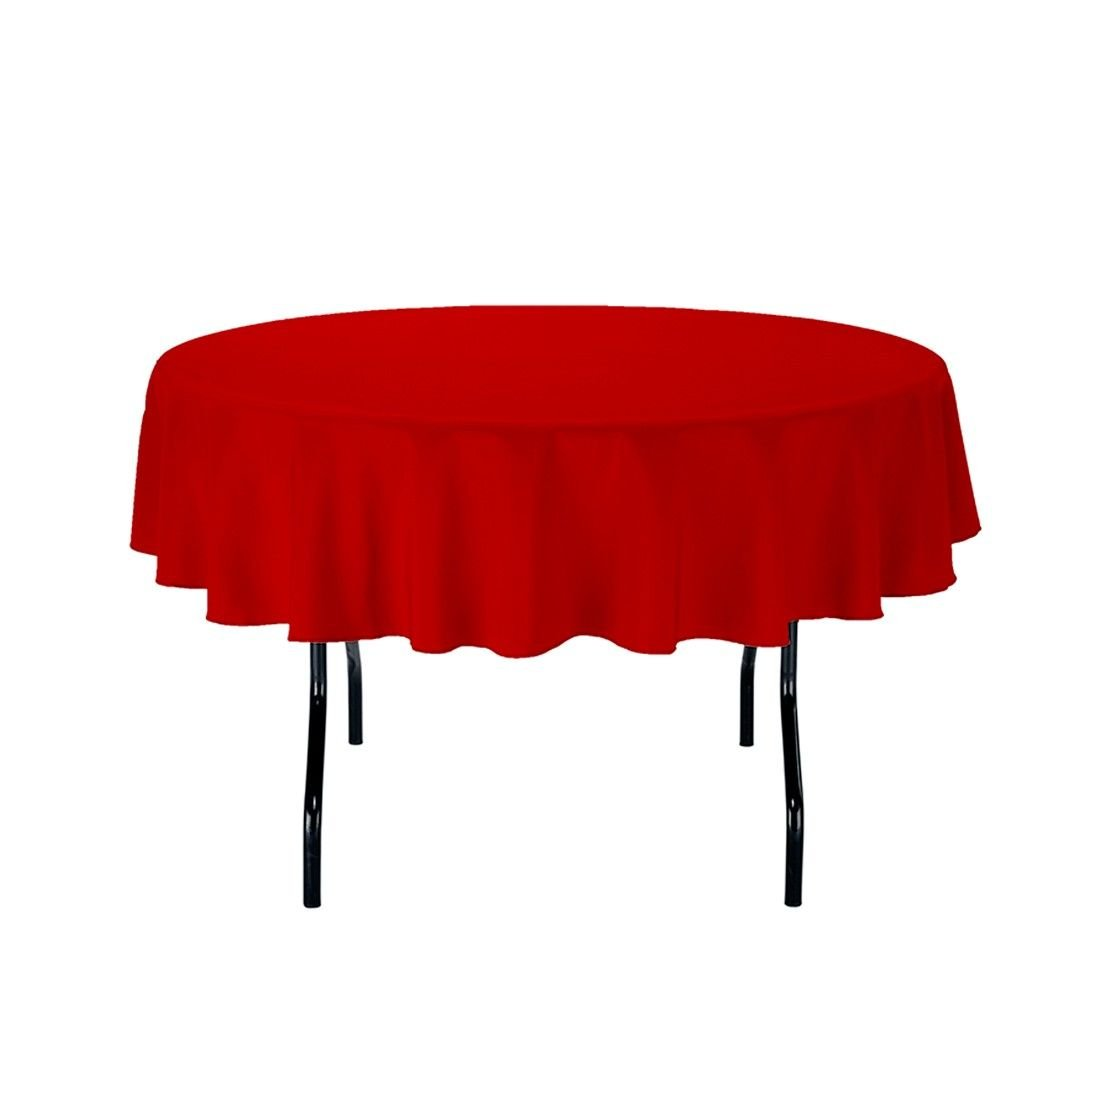 "Gee Di Moda Tablecloth - 70"" Inch Round Tablecloths for Circular Table Cover in Red Washable Polyester - Great for Buffet Table, Parties, Holiday Dinner & More"